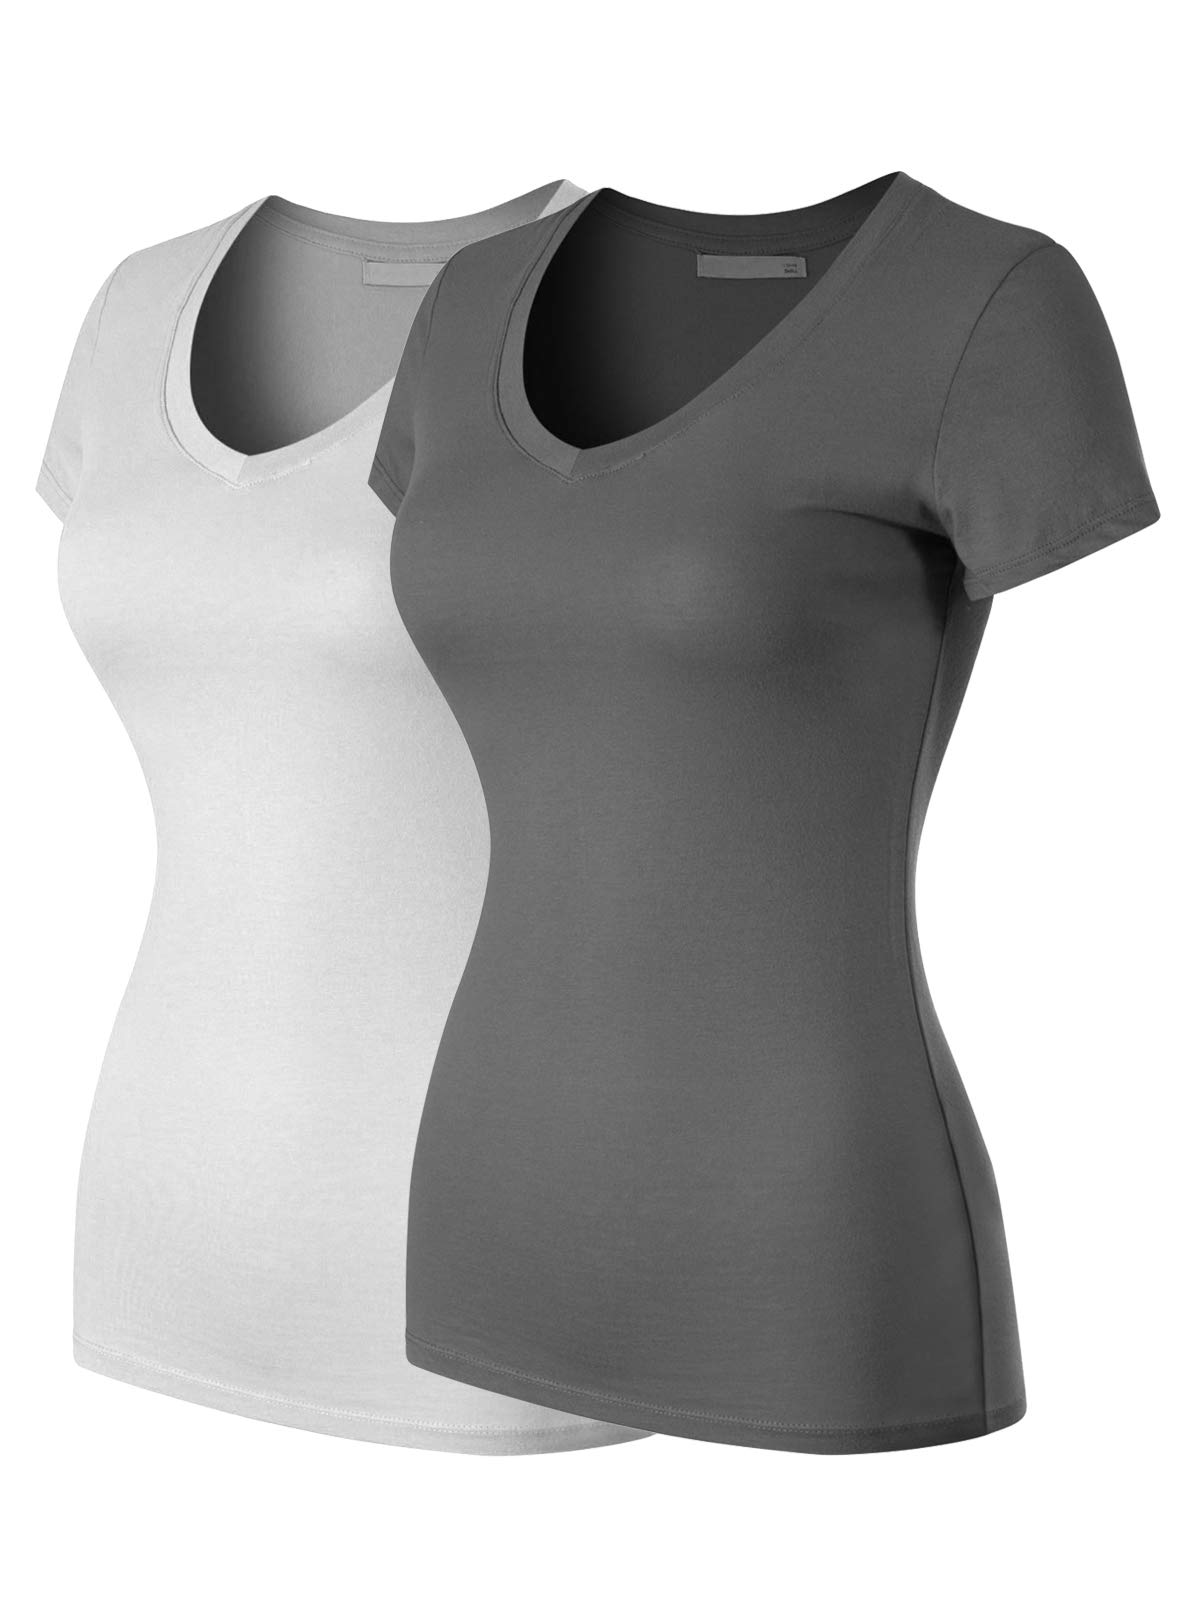 MixMatchy Women's Basic Solid Multi Colors Fitted Short Sleeve T-Shirt [S-3XL]